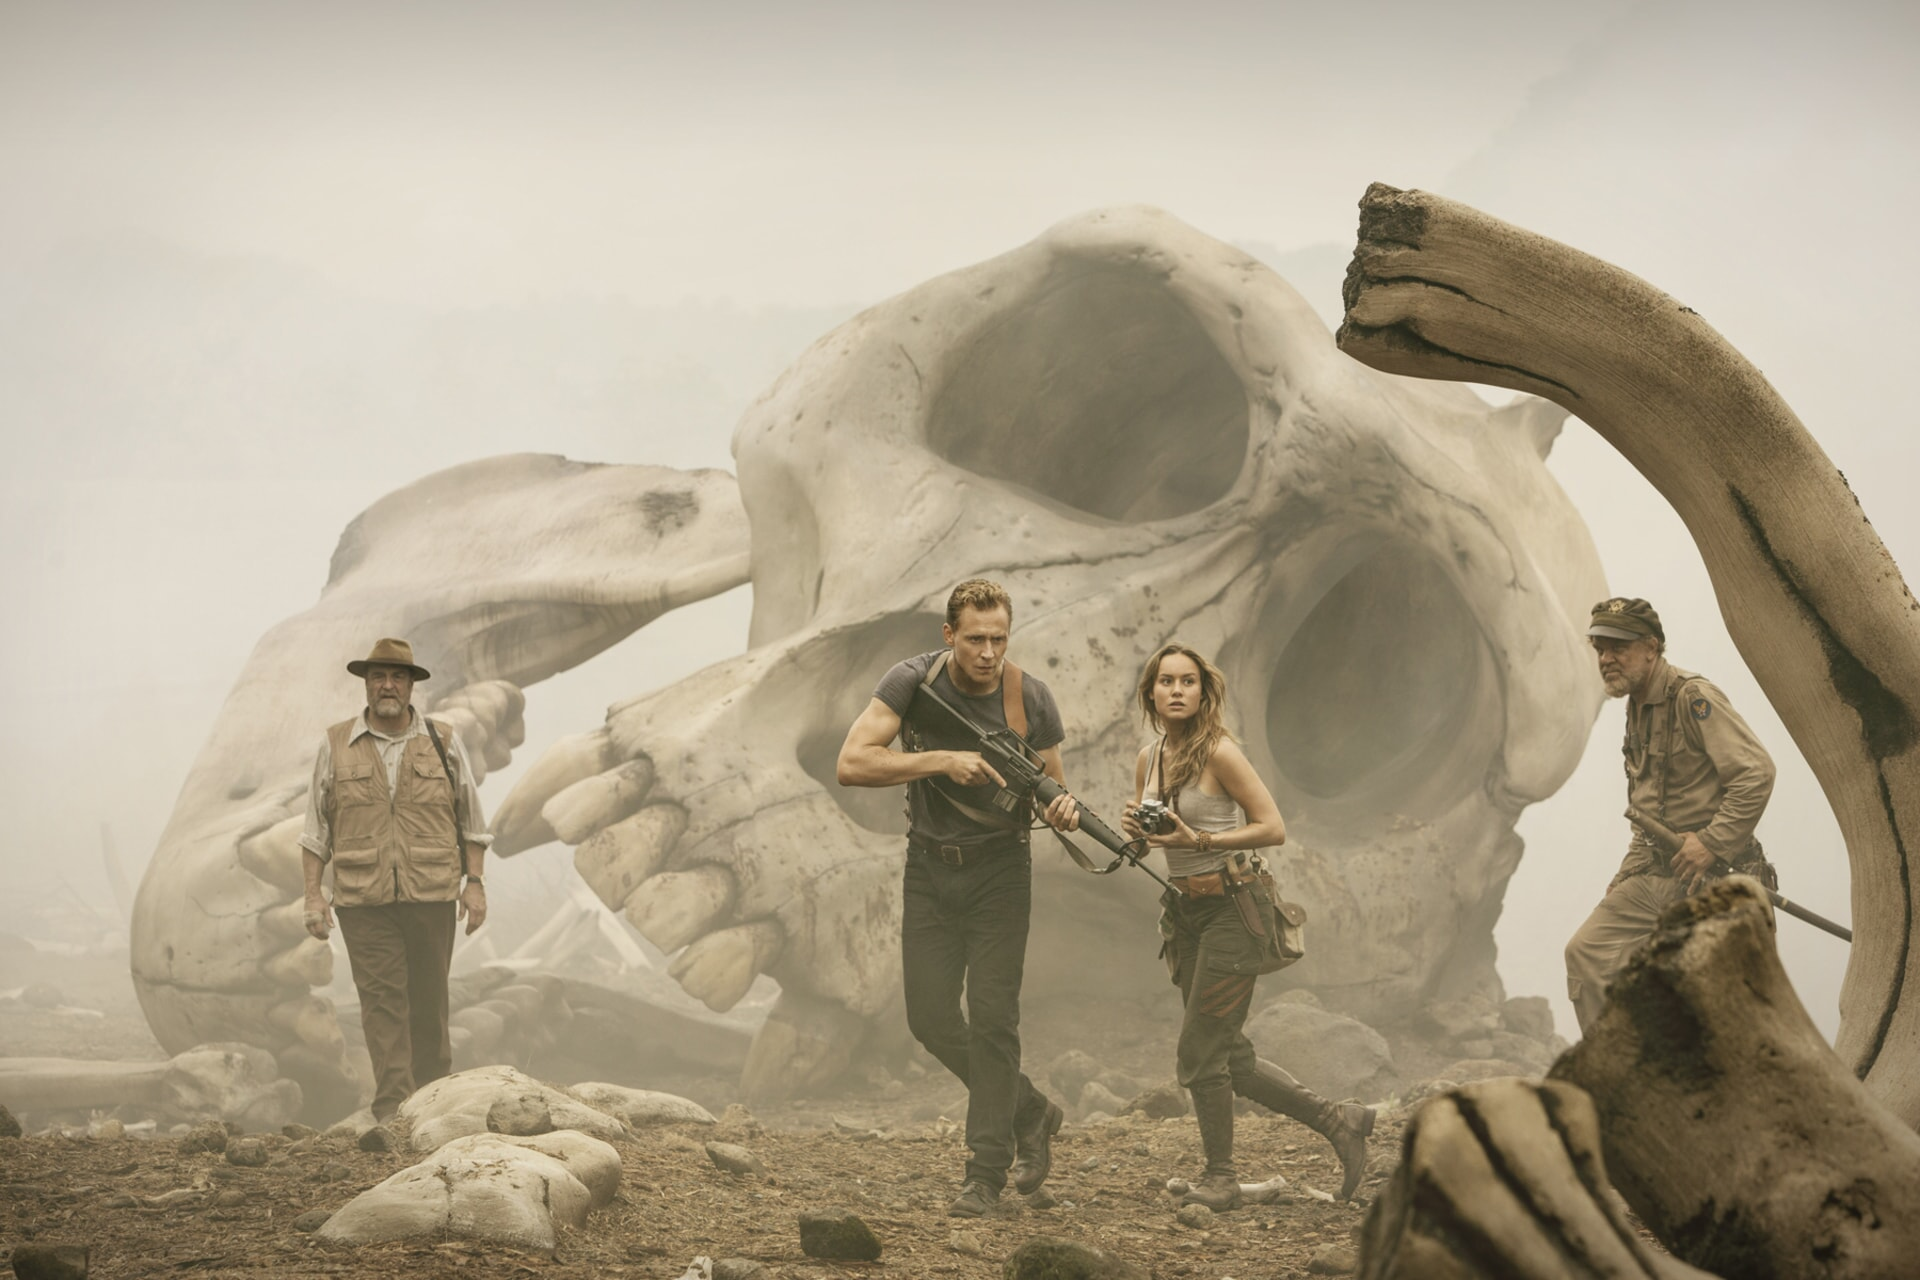 """JOHN GOODMAN as Randa, TOM HIDDLESTON as Conrad, BRIE LARSON as Mason and JOHN C. REILLY as Marlow in Warner Bros. Pictures' and Legendary Pictures' action adventure """"KONG: SKULL ISLAND,"""" a Warner Bros. Pictures release."""